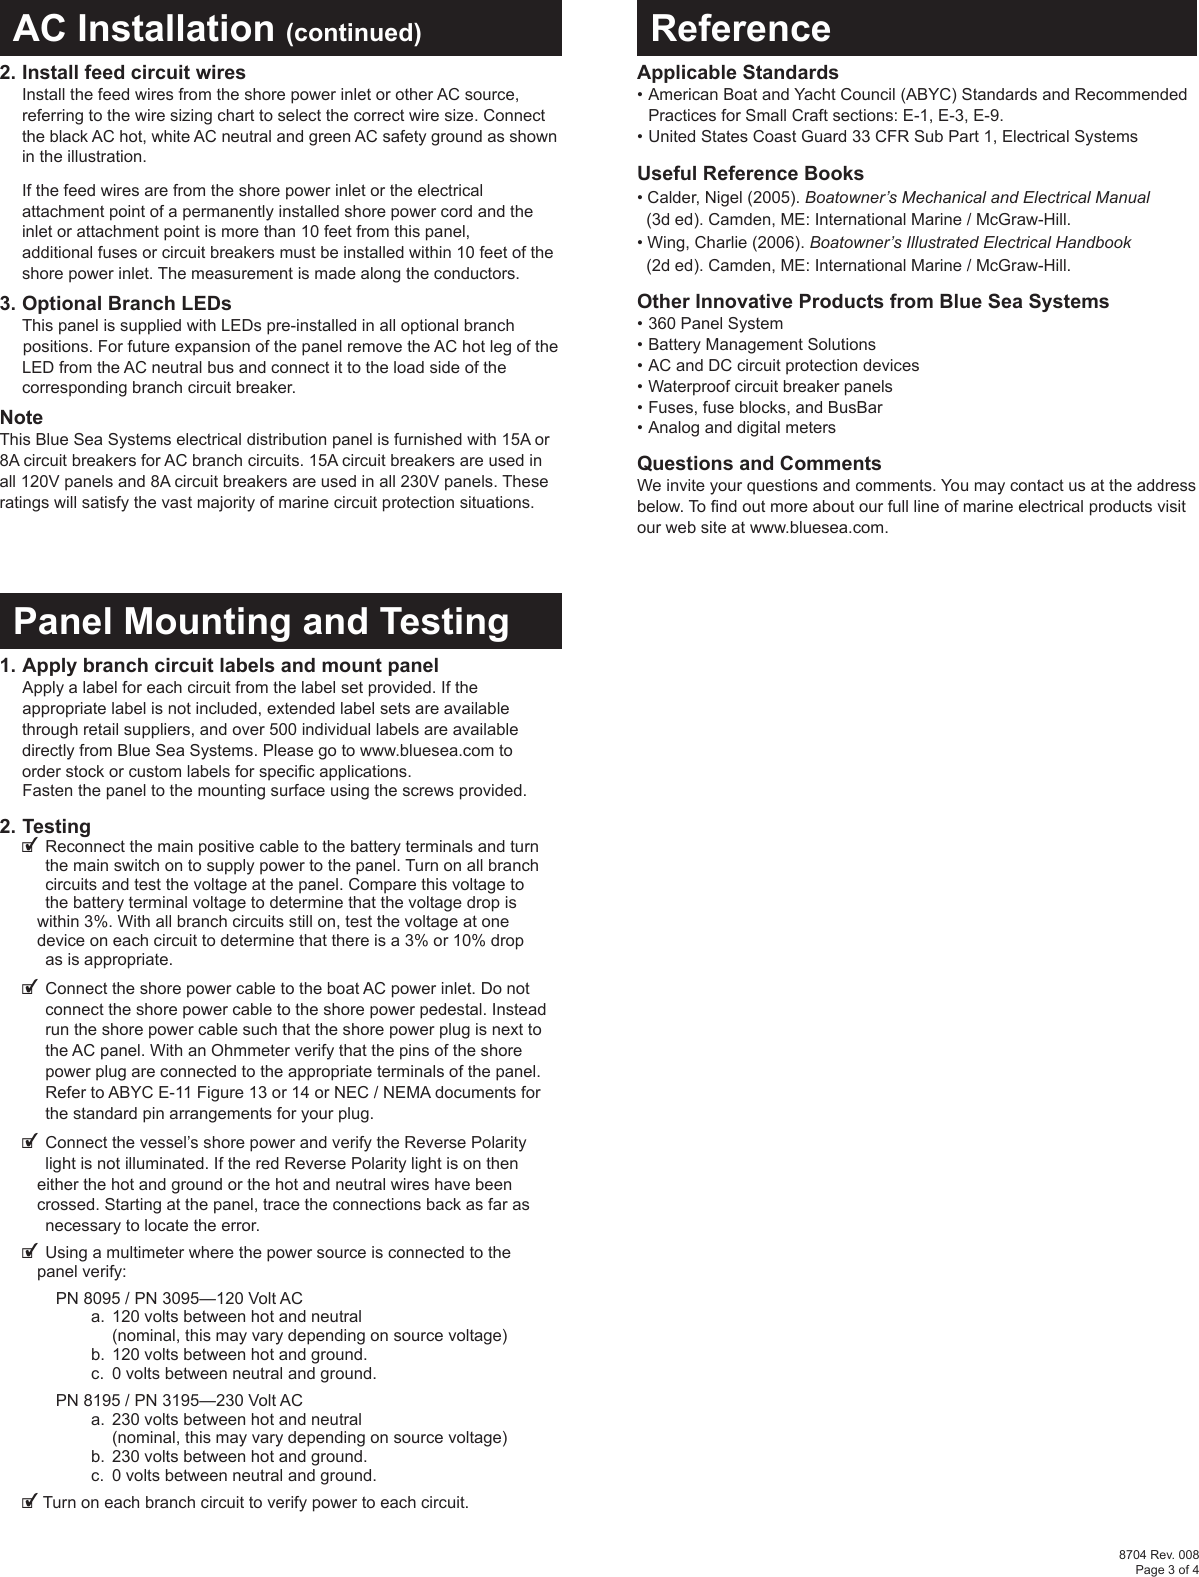 Blue Sea Systems Water Heater Pn 3095 Users Manual Wiring Installation Coastal Source Page 3 Of 4